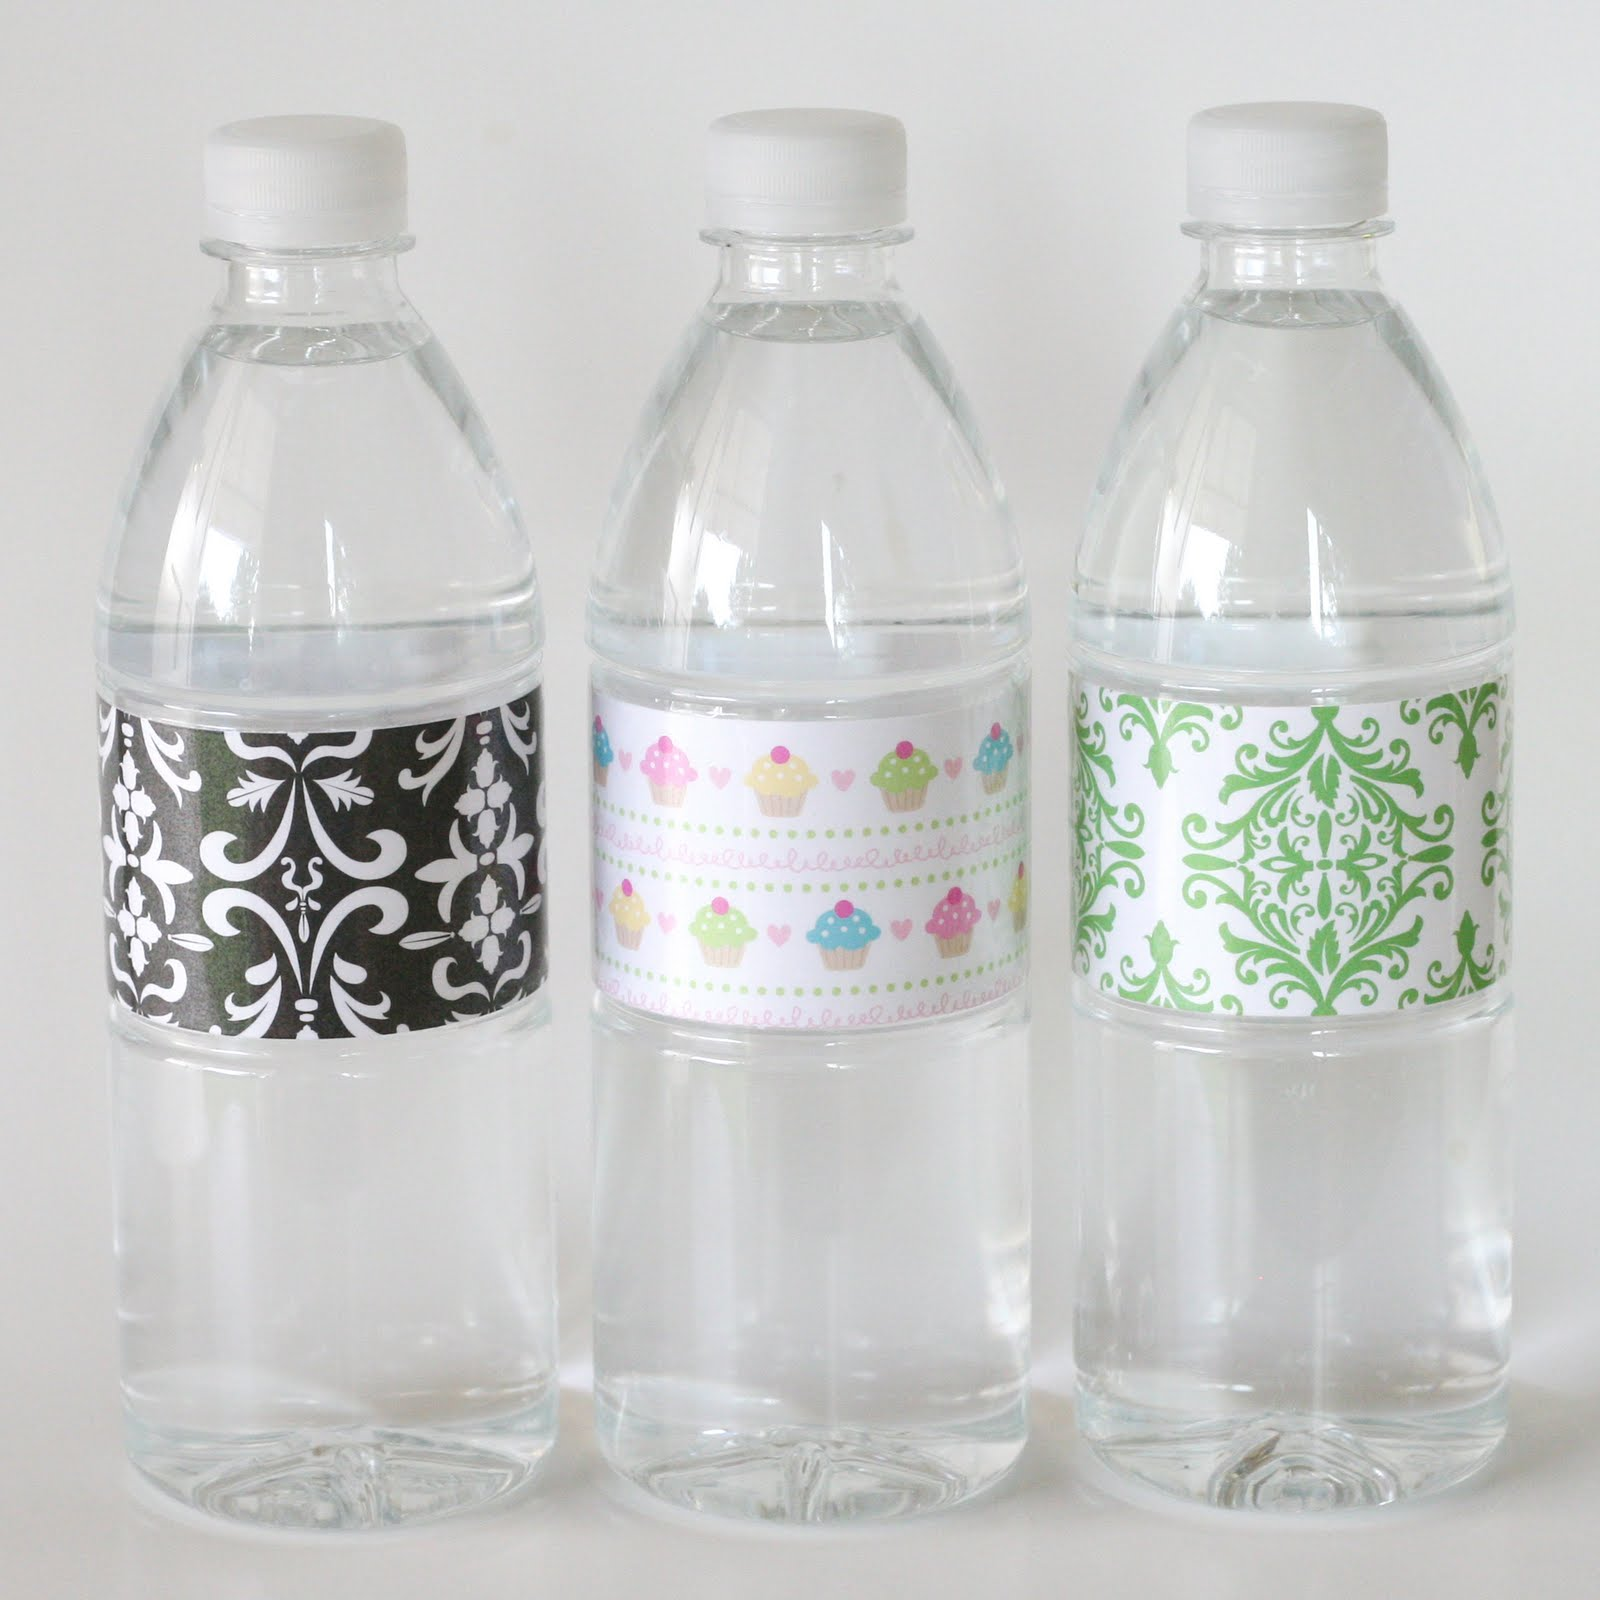 Decorate A Bottle: {How-to} Make Custom Water Bottle Labels